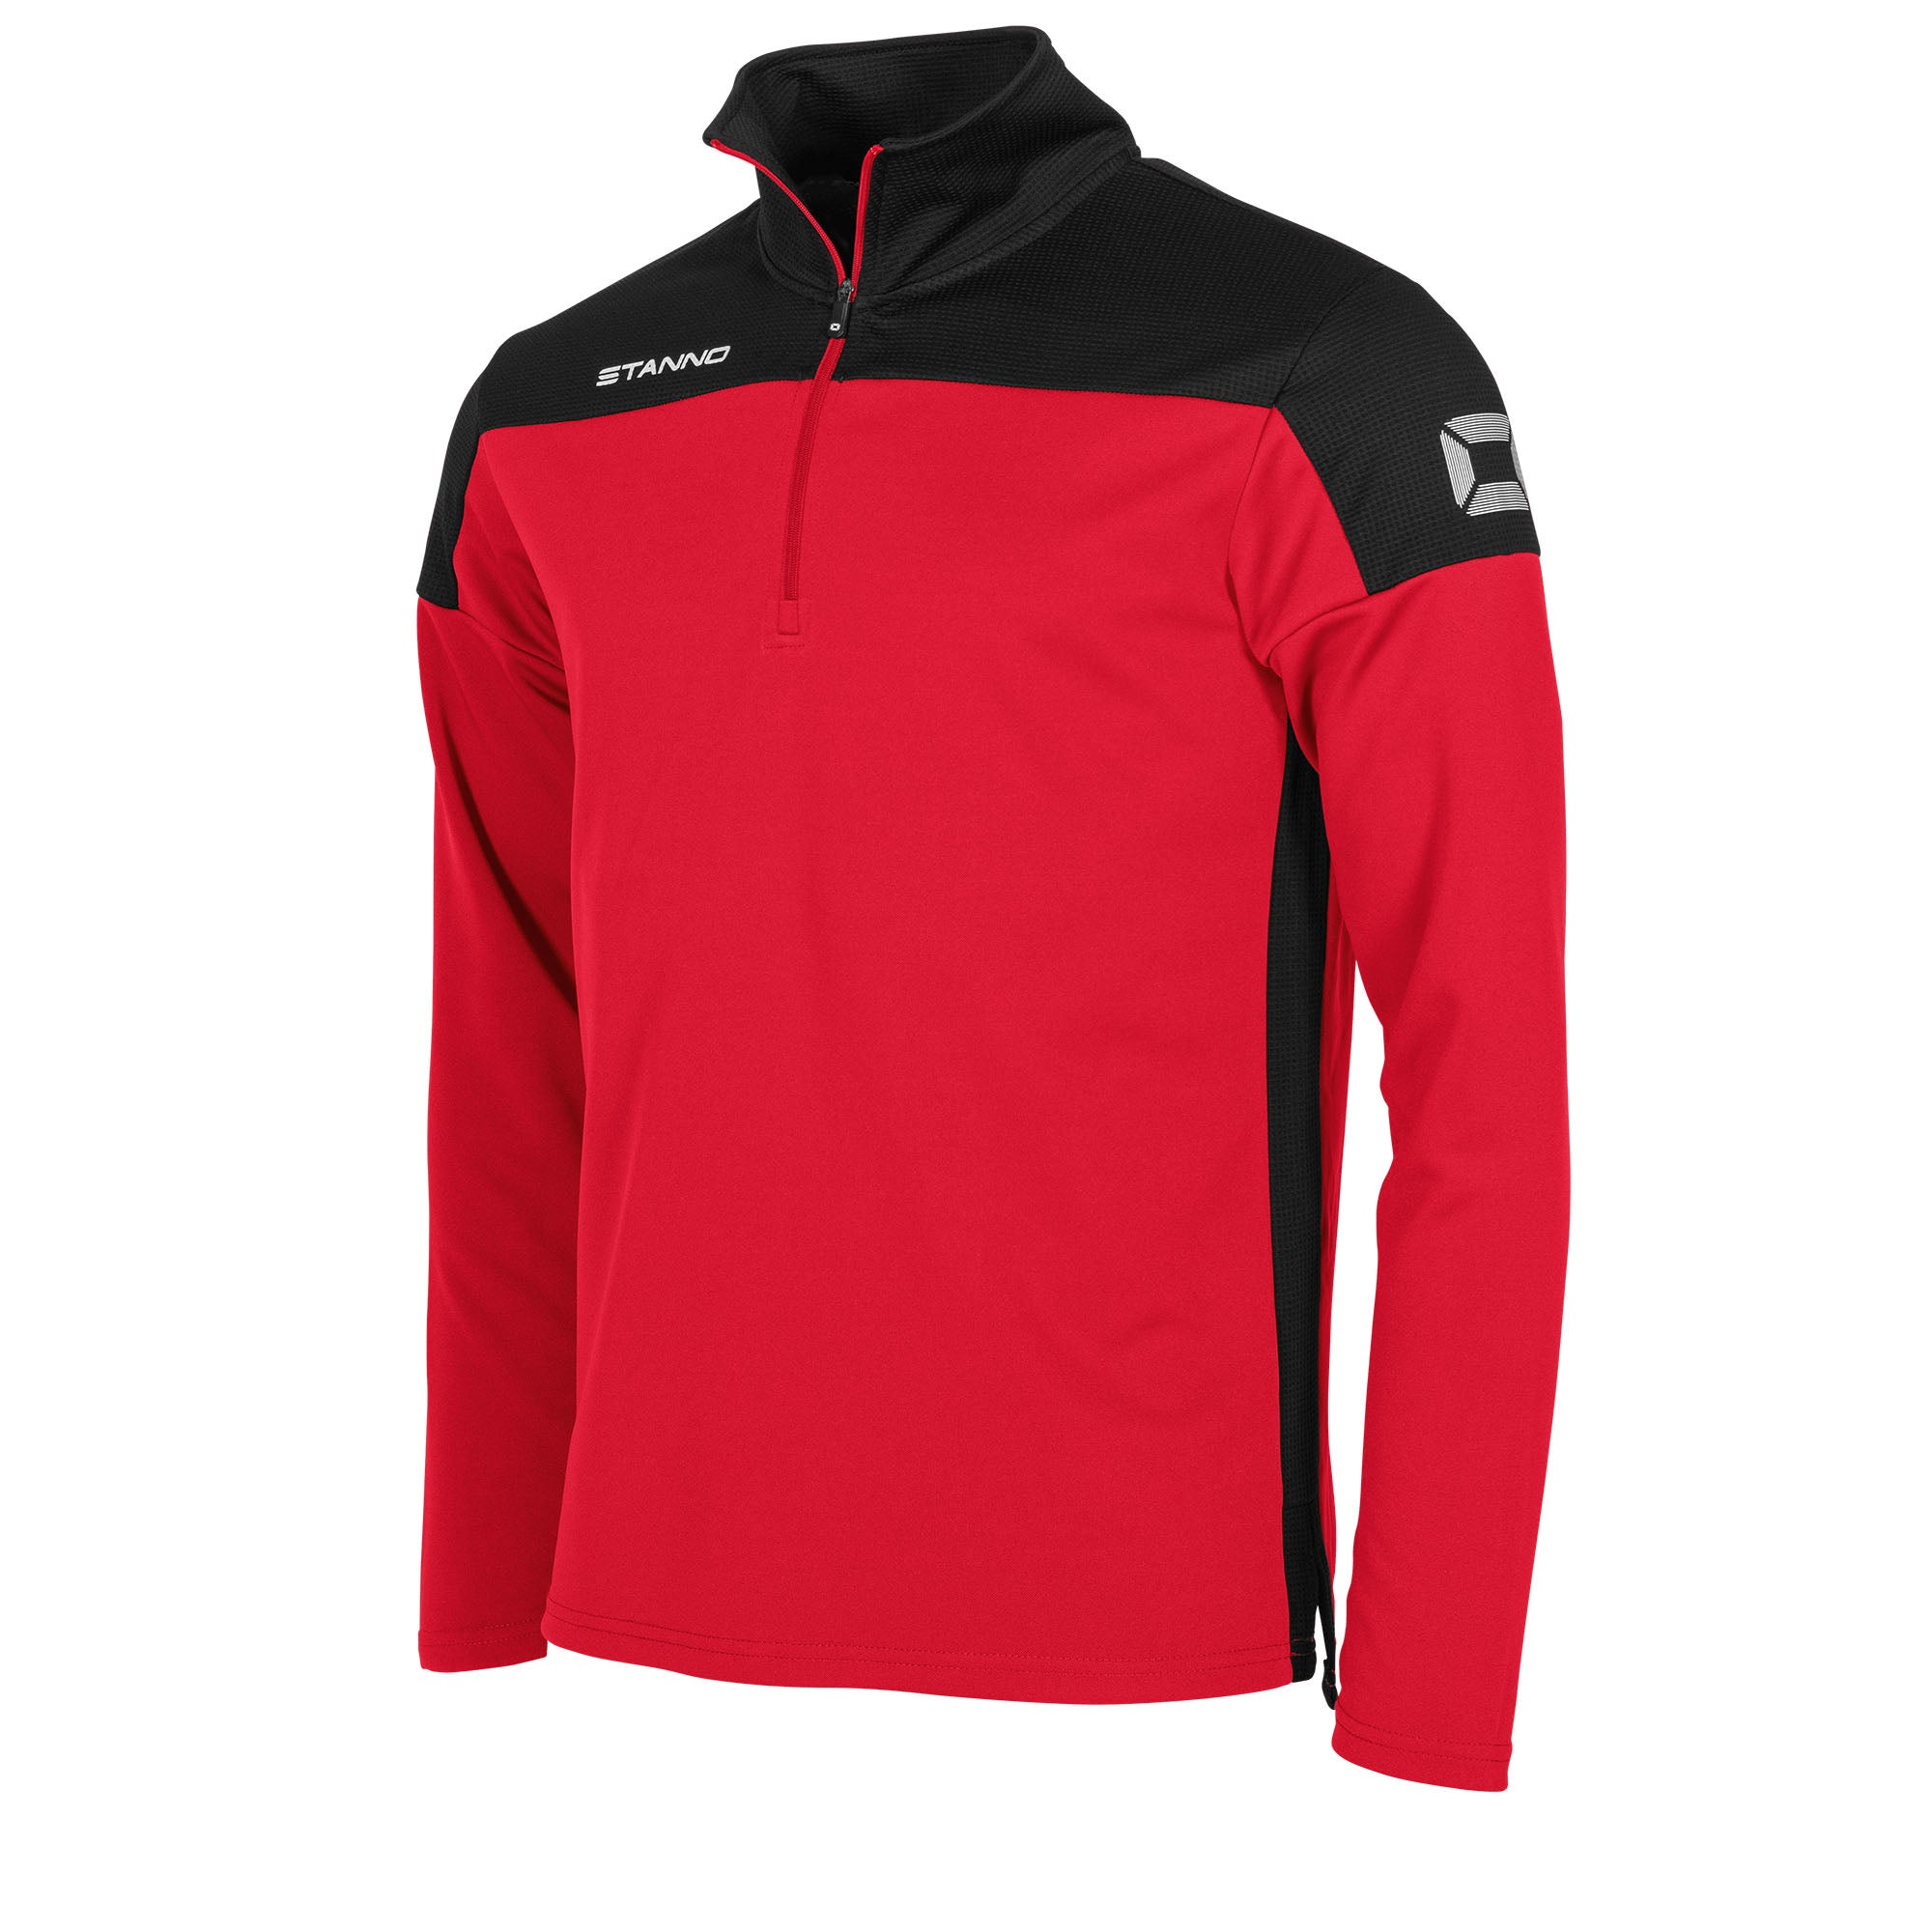 Stanno Pride Training 1/4 Zip in red with black contrast shoulder and side panel